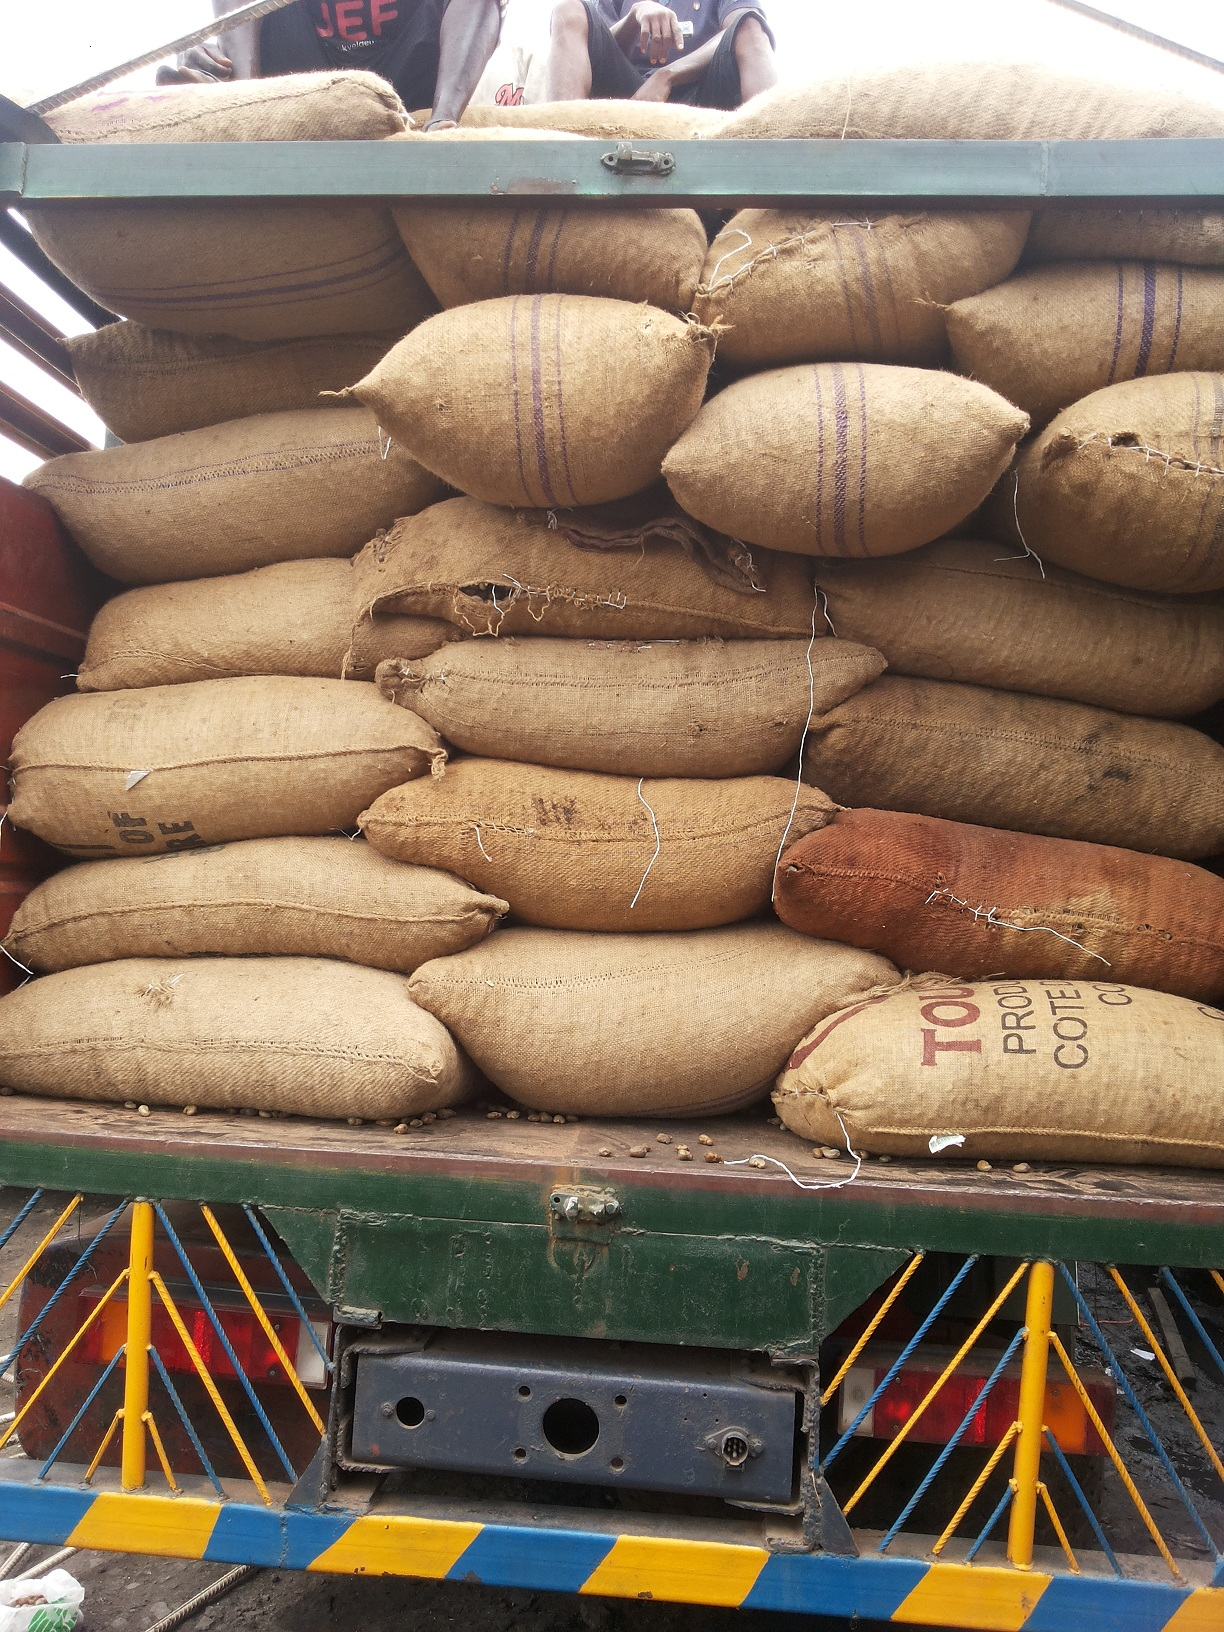 cashew bags on truck